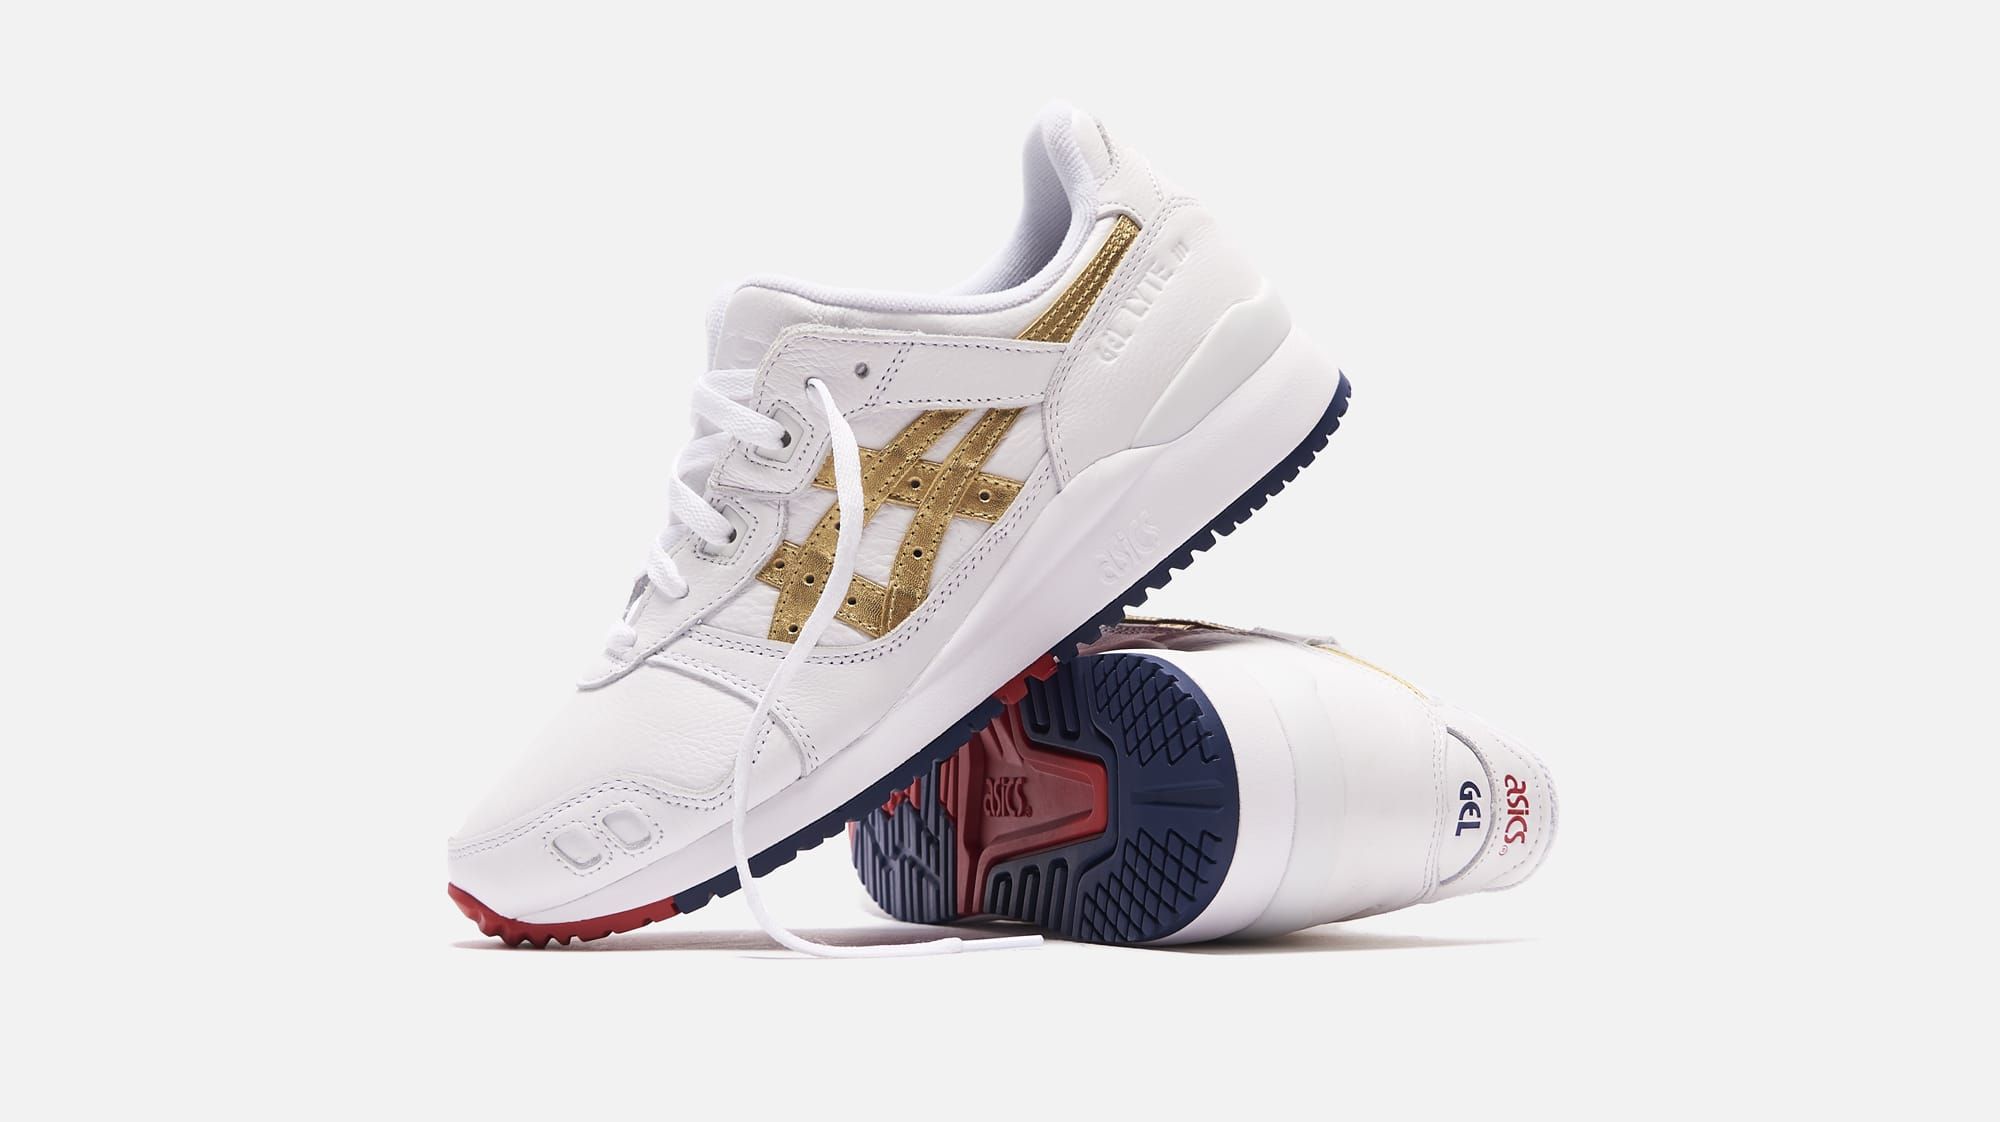 Ronnie Fieg x Asics Gel-Lyte 3 'Super Gold' Side